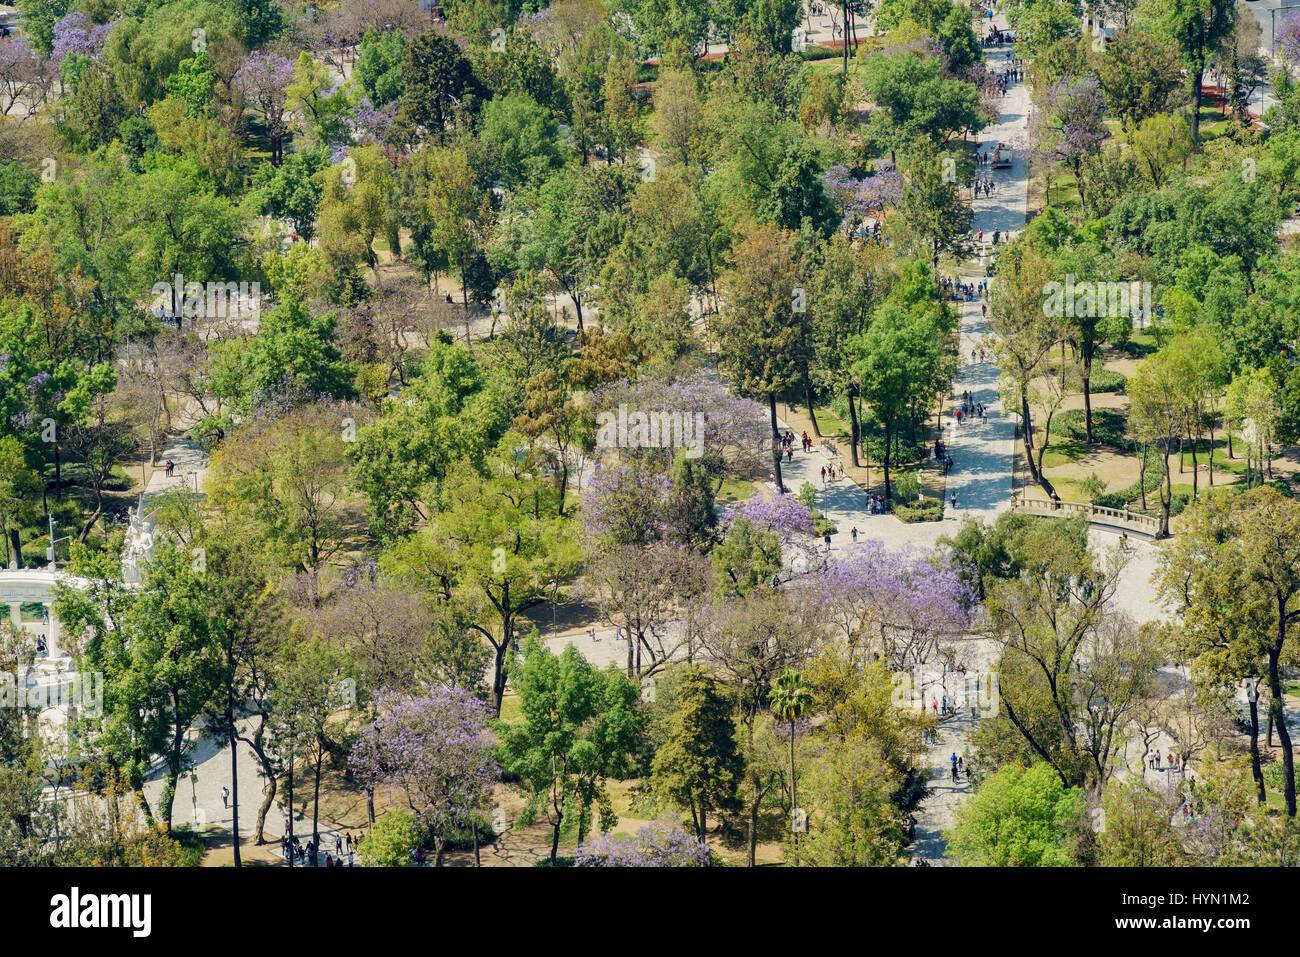 Aerial view of Central Alameda Park from Mirador Torre Latino - Stock Image